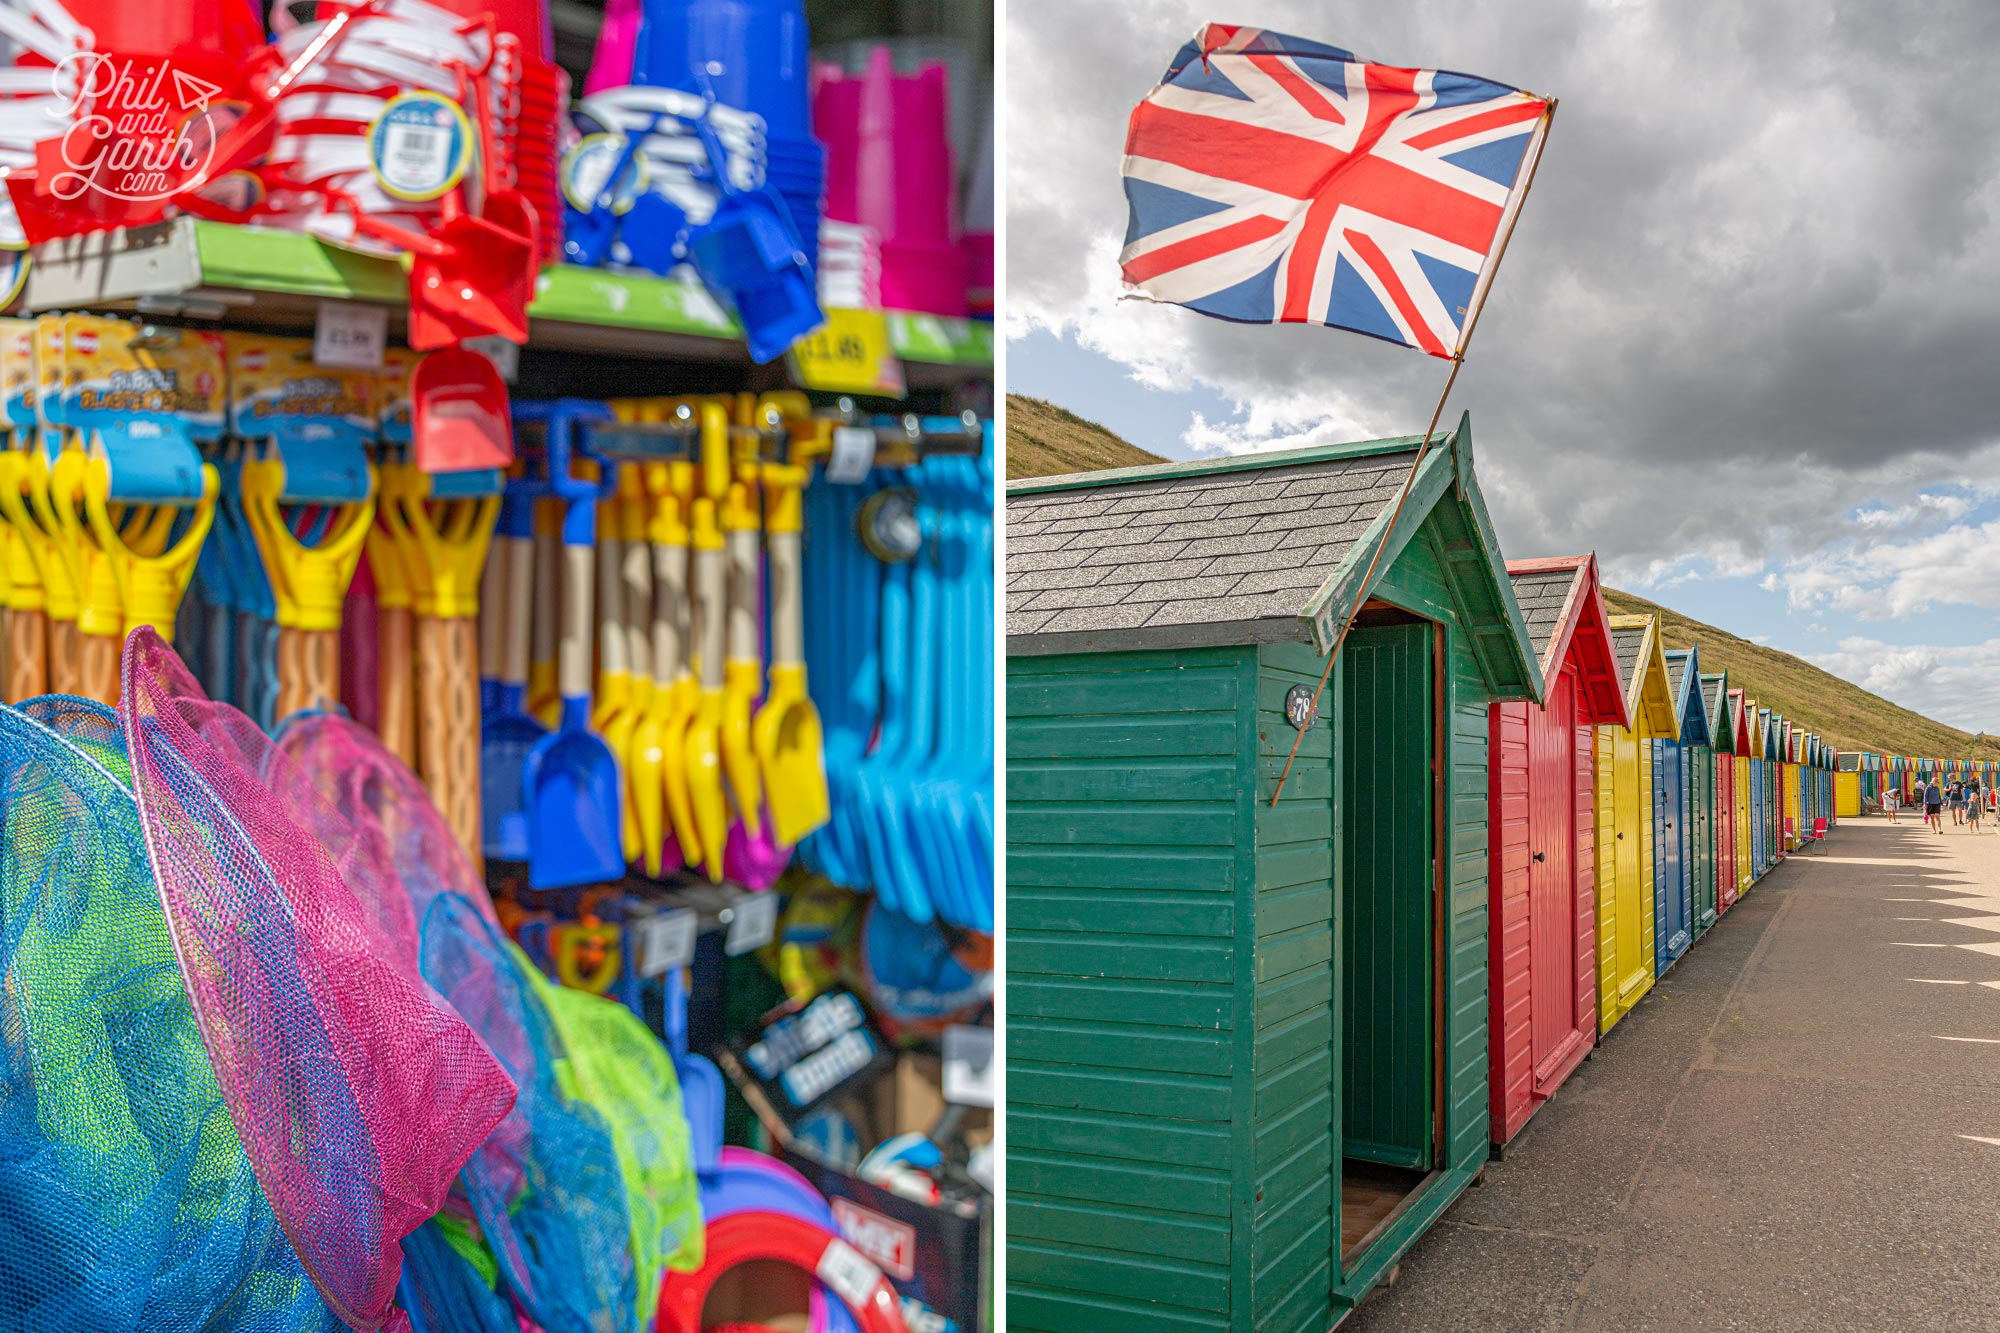 Icons of the British seaside - beach huts, bucket and spades in Whitby